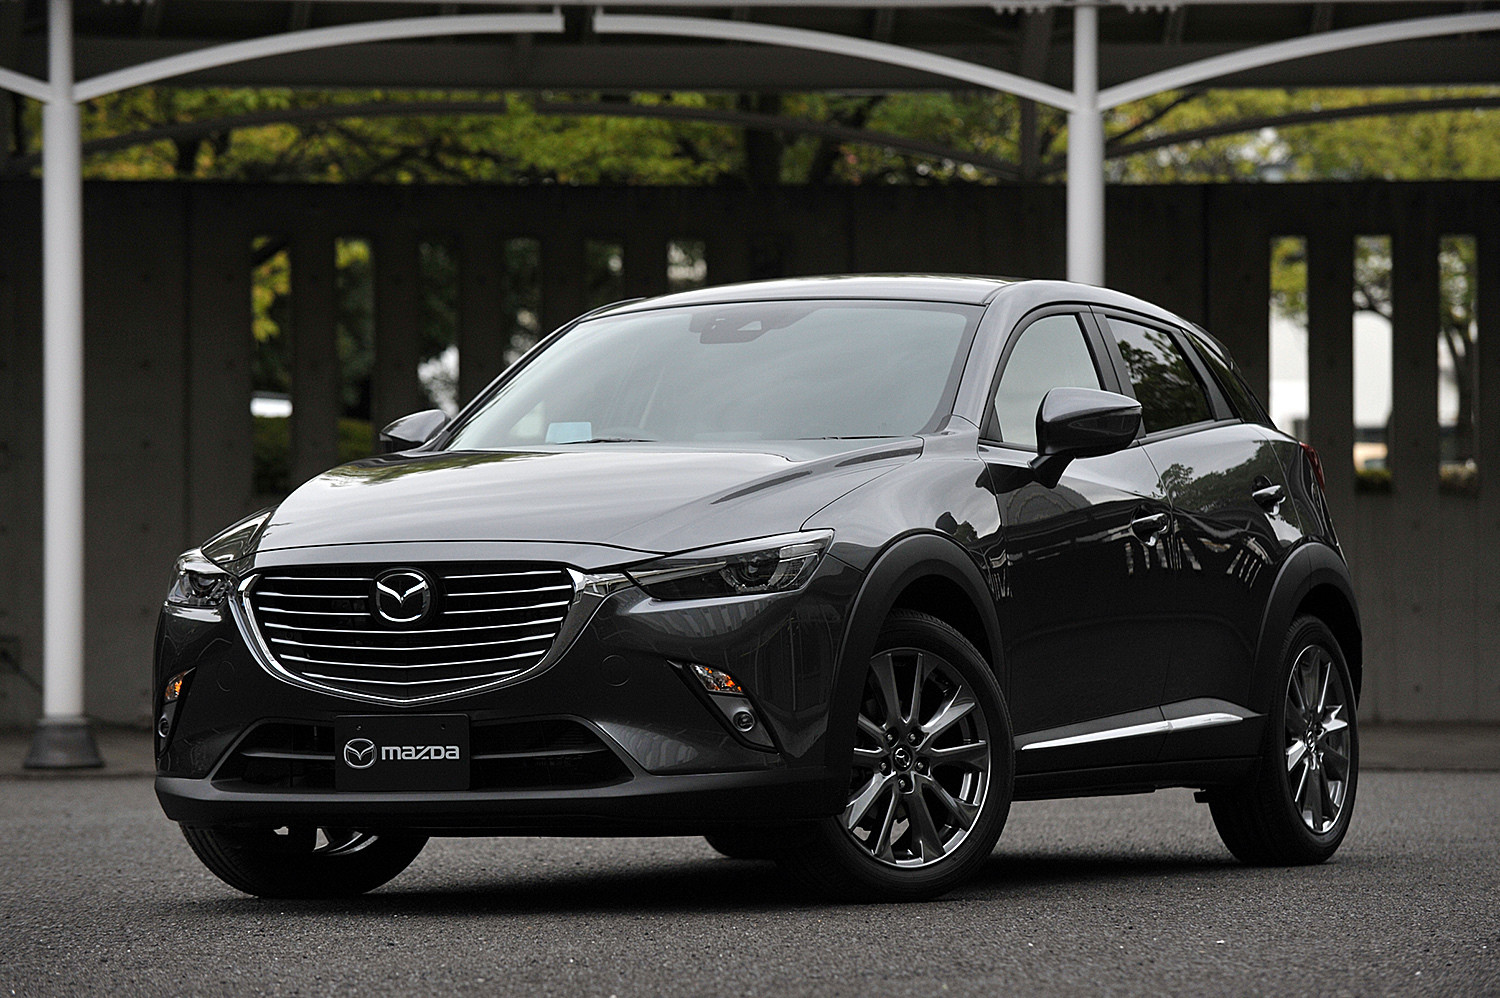 mazda cx 3 2015 topic officiel page 134 cx 3 mazda forum marques. Black Bedroom Furniture Sets. Home Design Ideas